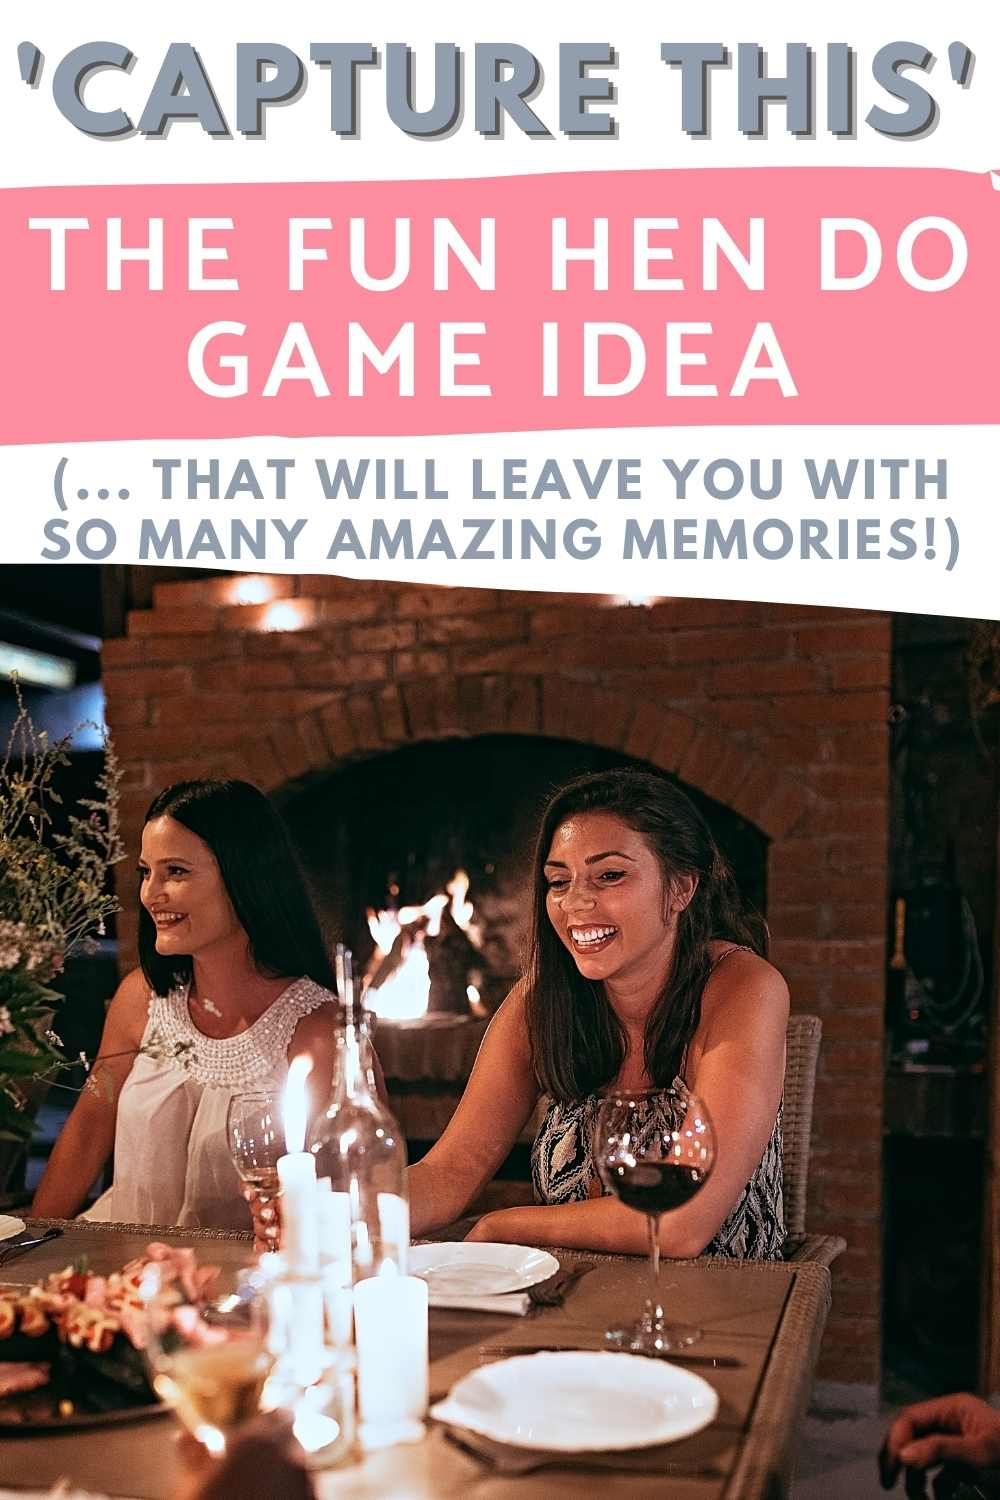 Capture This Funny Hens Party Game